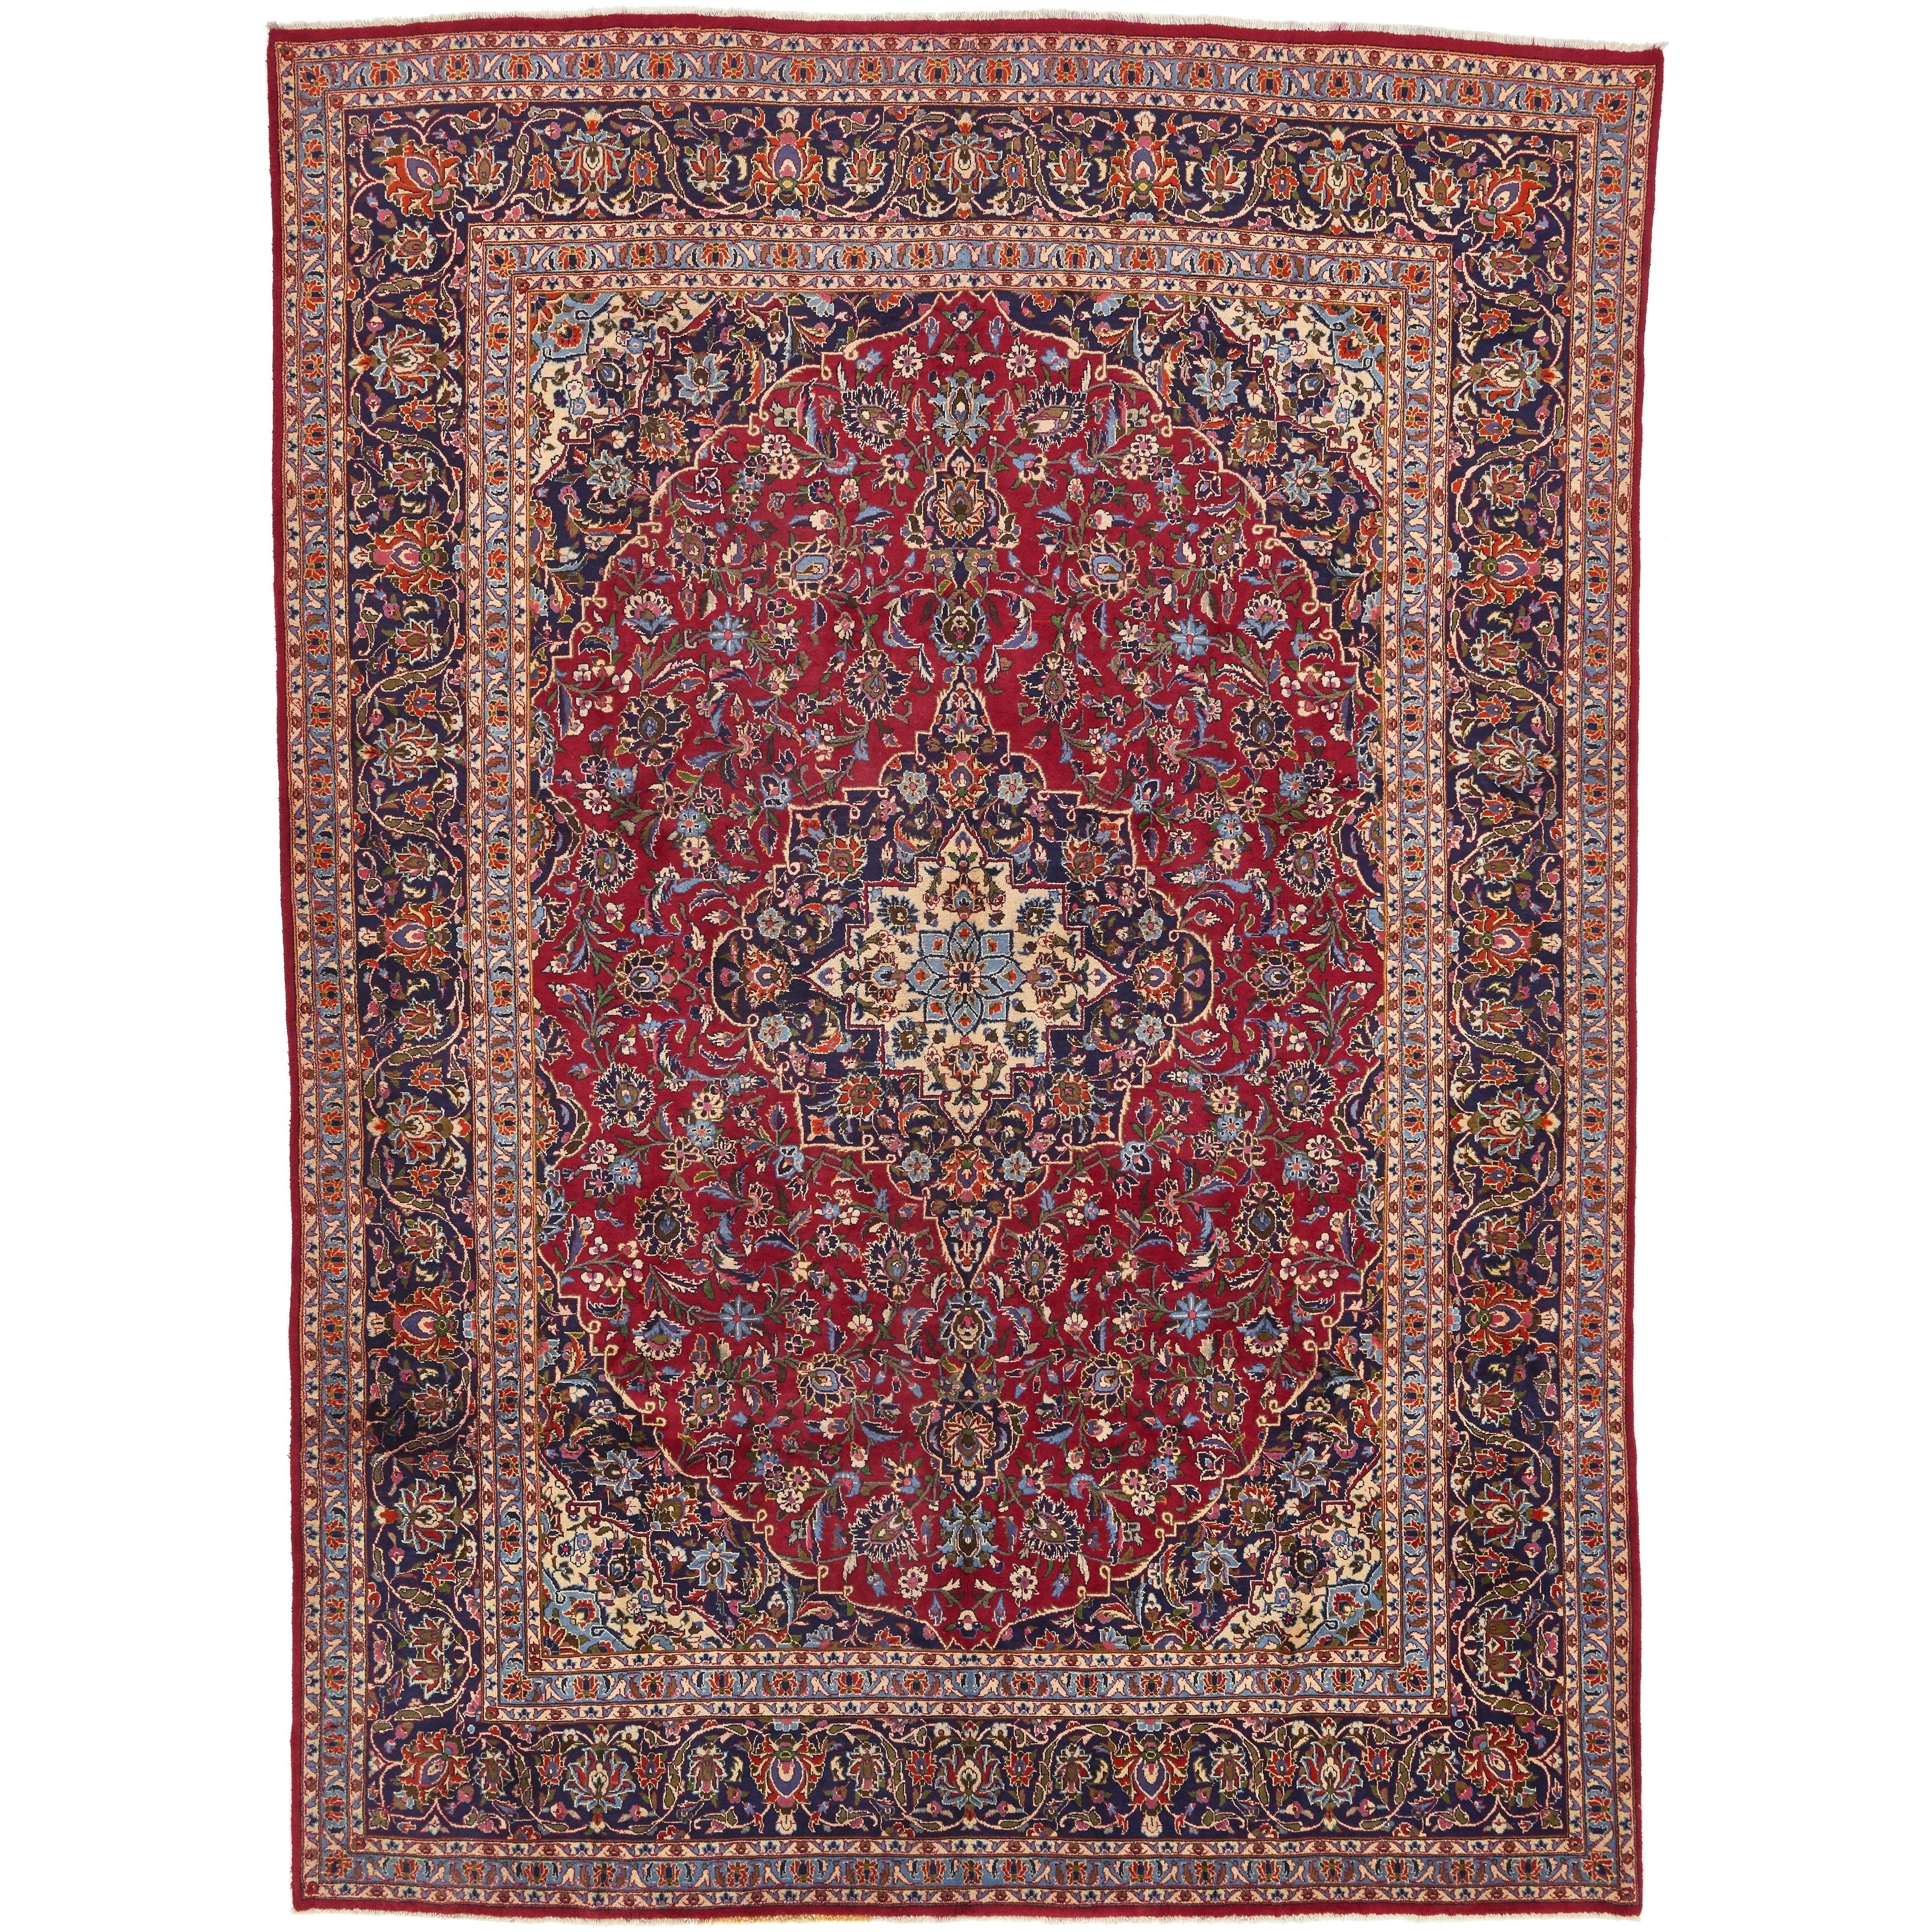 Hand Knotted Kashan Wool Area Rug - 9 6 x 13 (Red - 9 6 x 13)